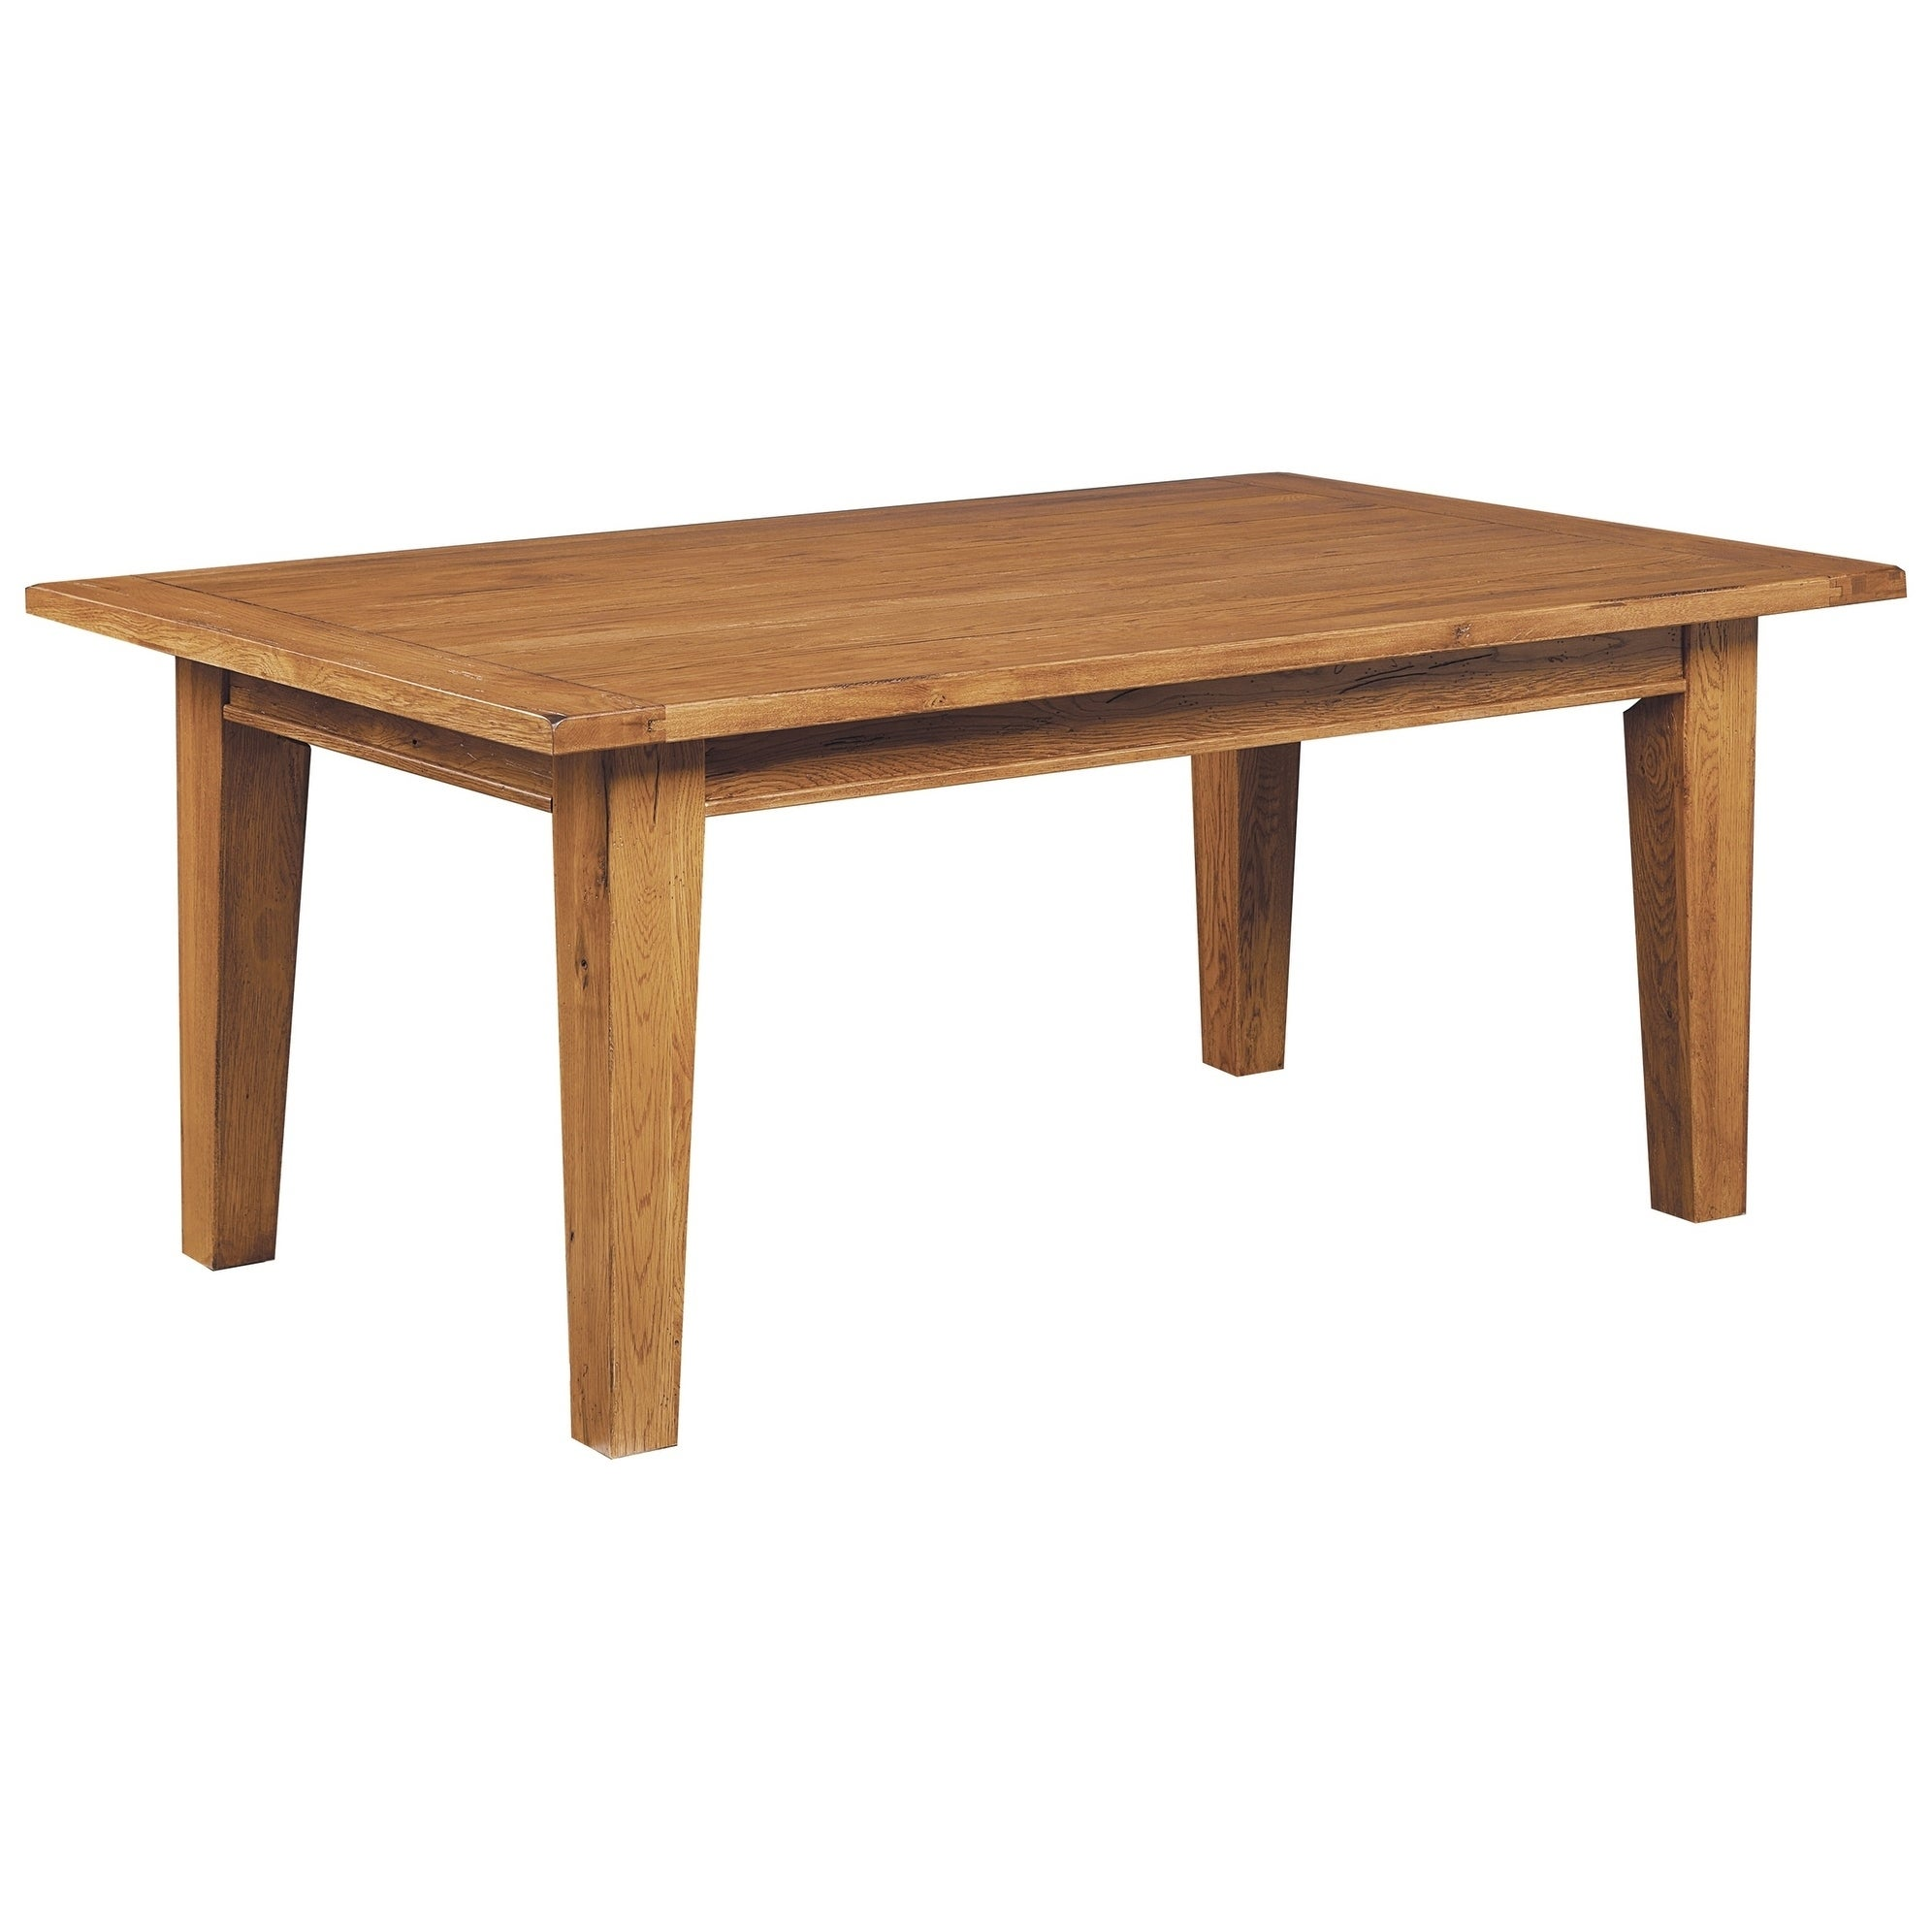 Picture of: Broyhill Attic Heirlooms Rectangular Leg Dining Table Brown Overstock 21620765